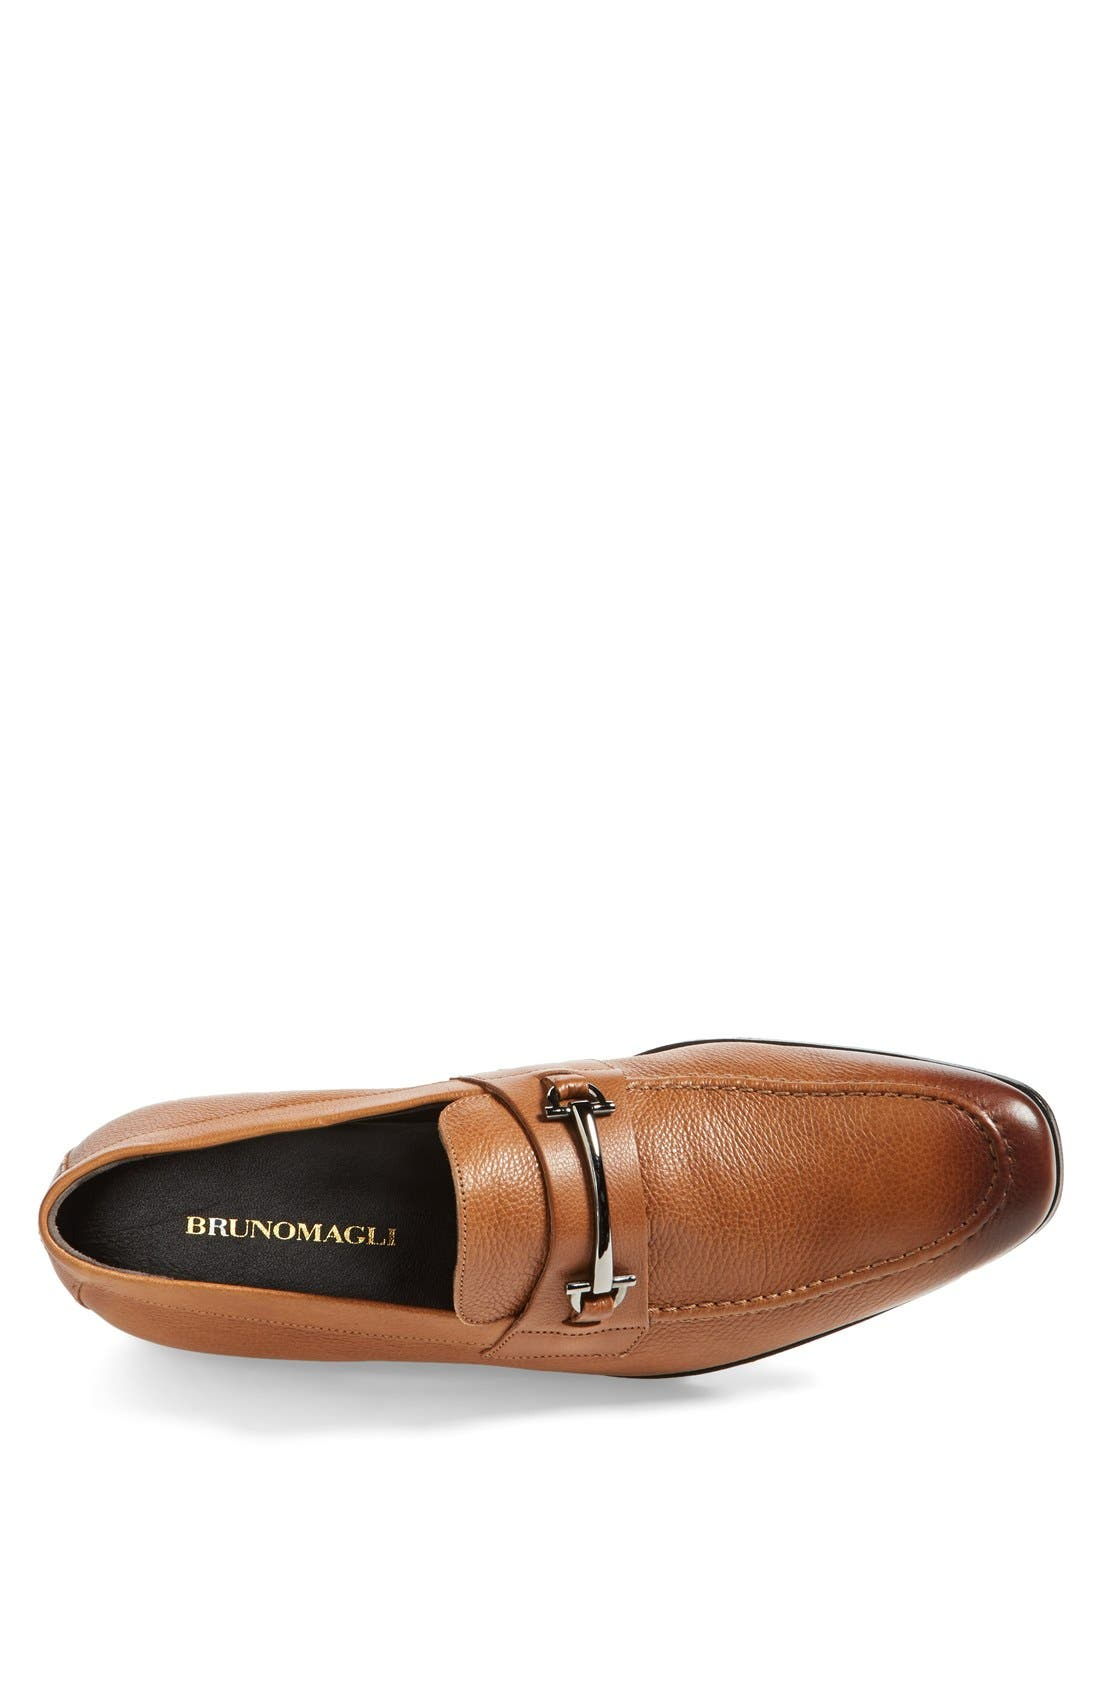 'Mamante II' Pebbled Leather Loafer,                             Alternate thumbnail 2, color,                             233